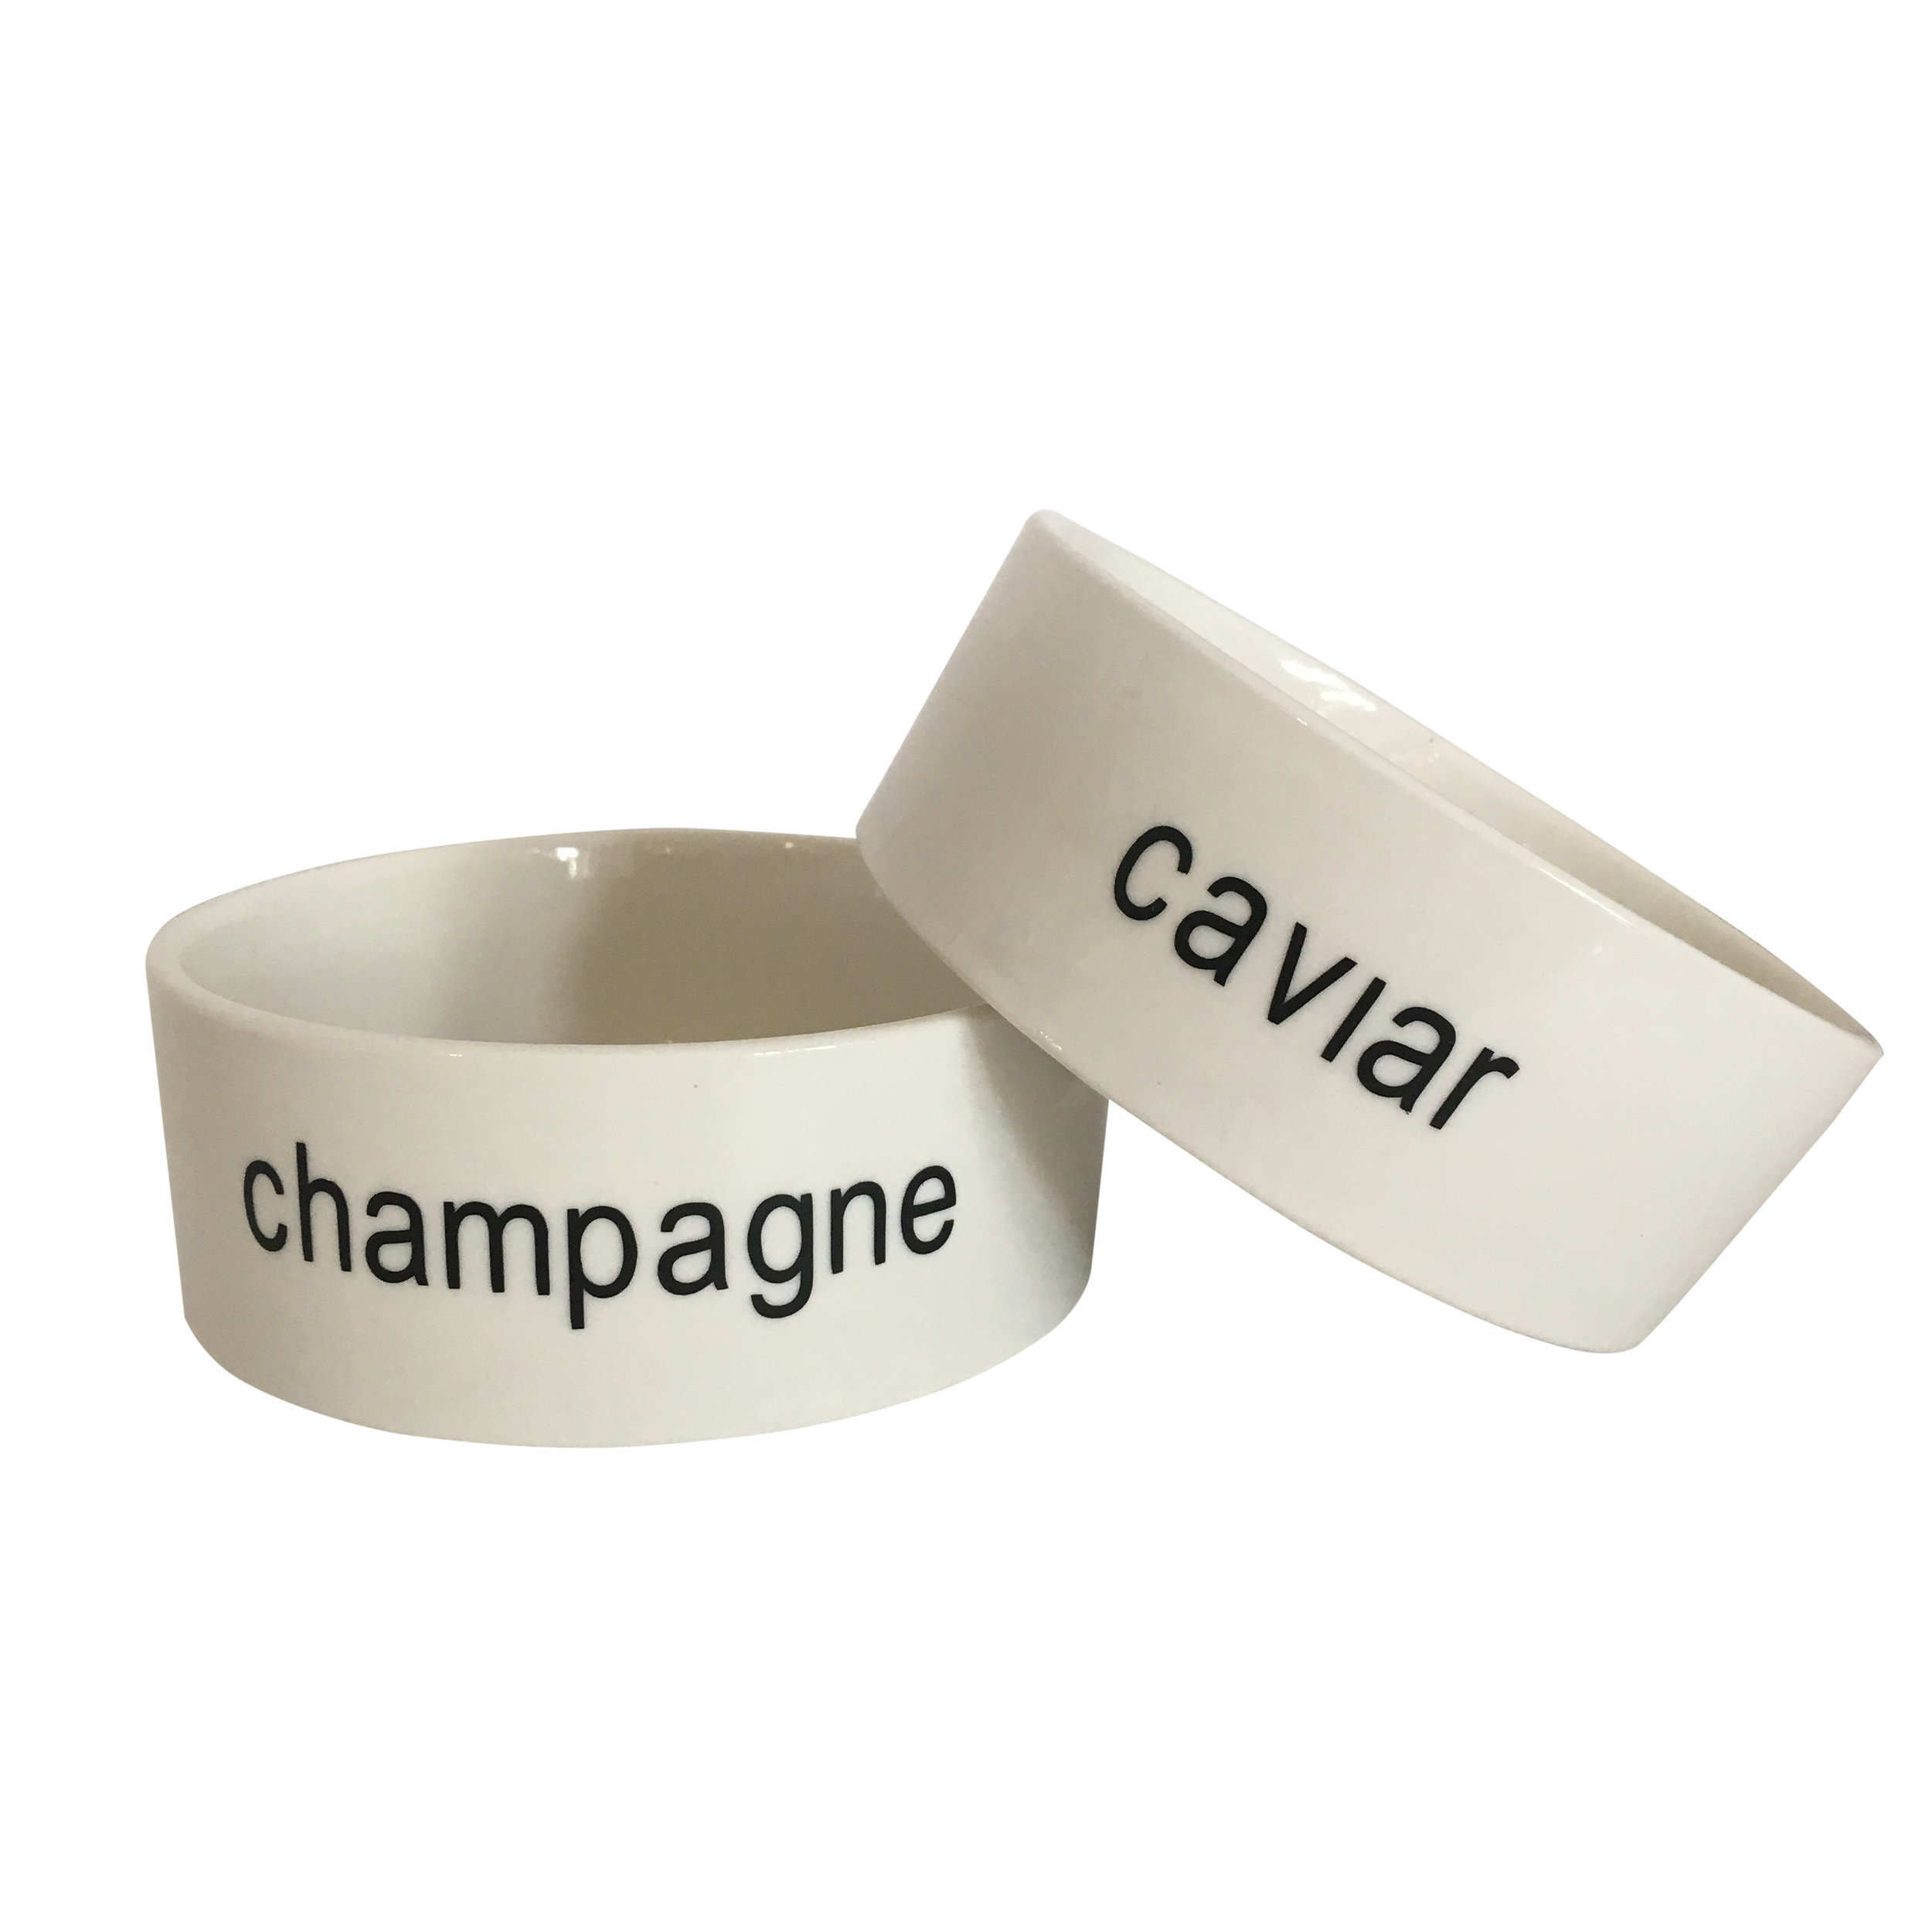 champagne and caviar cat bowls